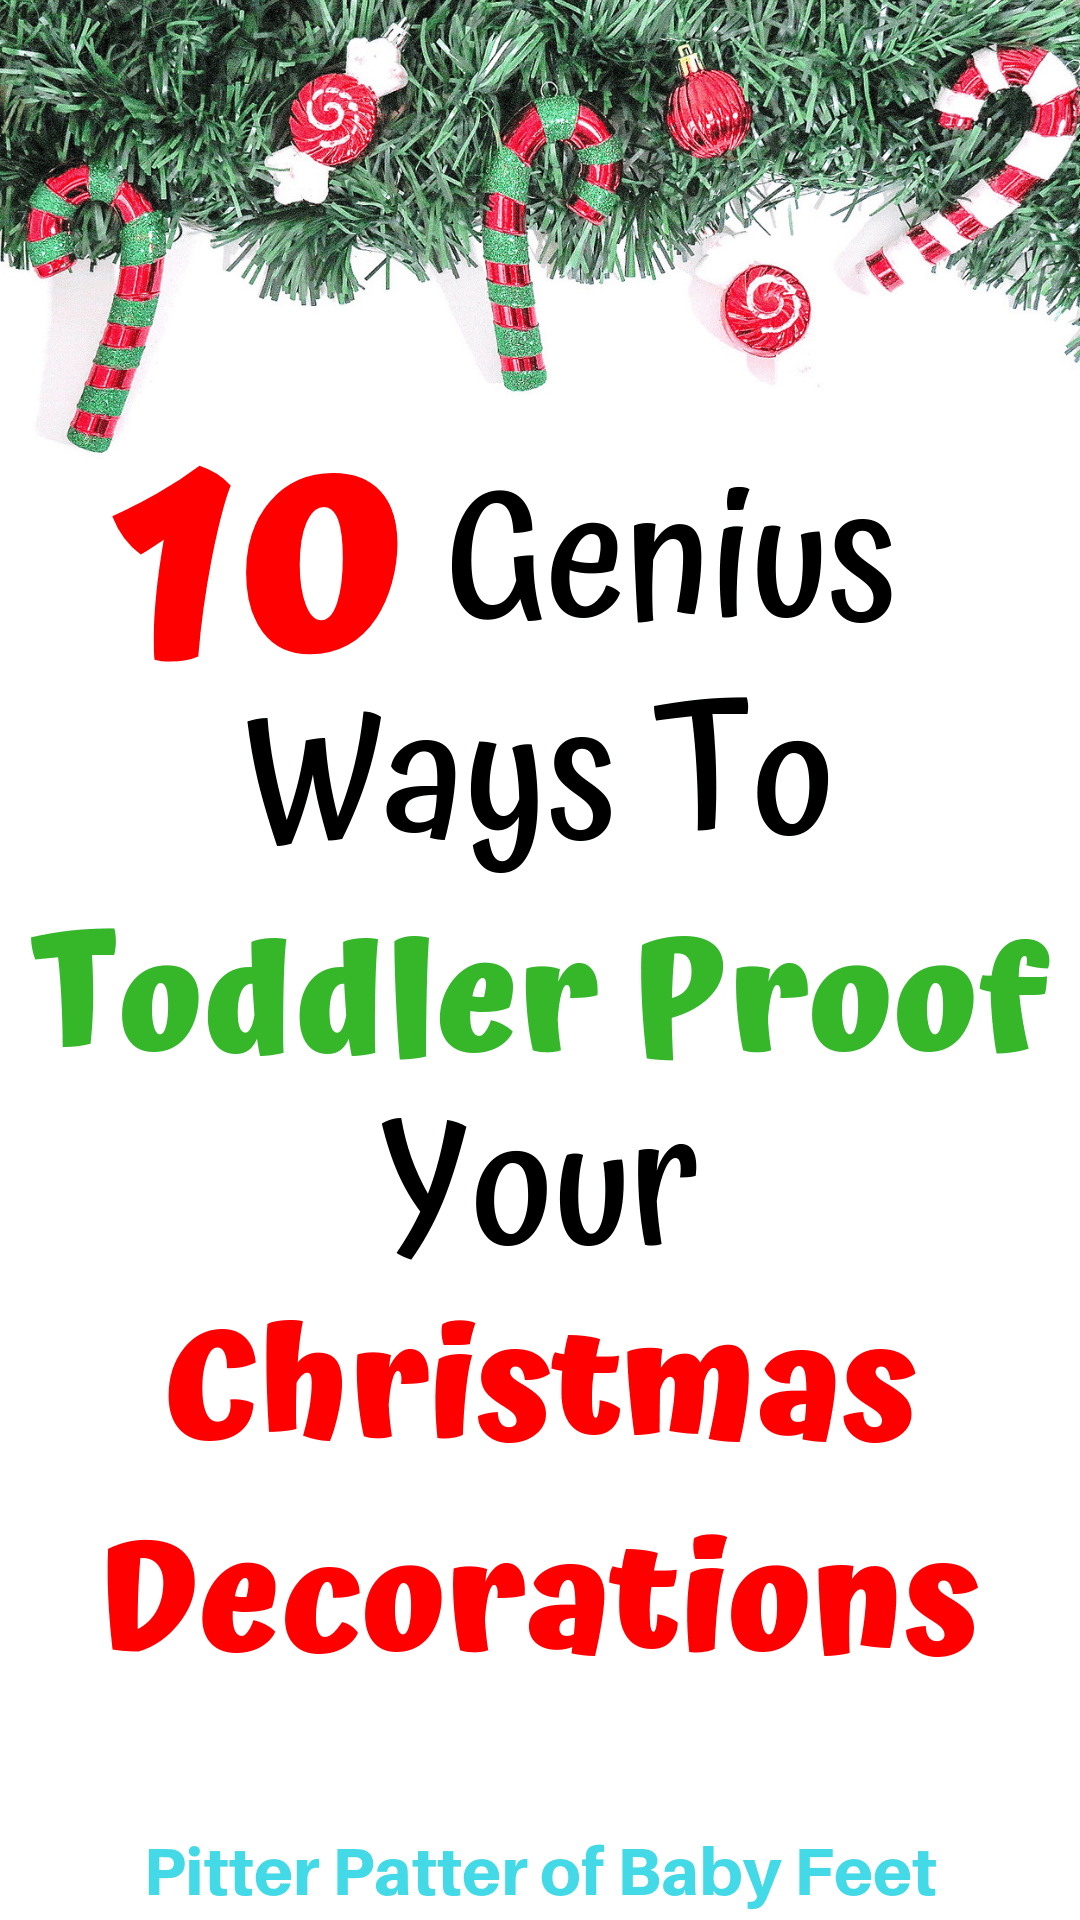 10 Genius Ways To Toddler Proof Christmas Decorations | Holiday ...